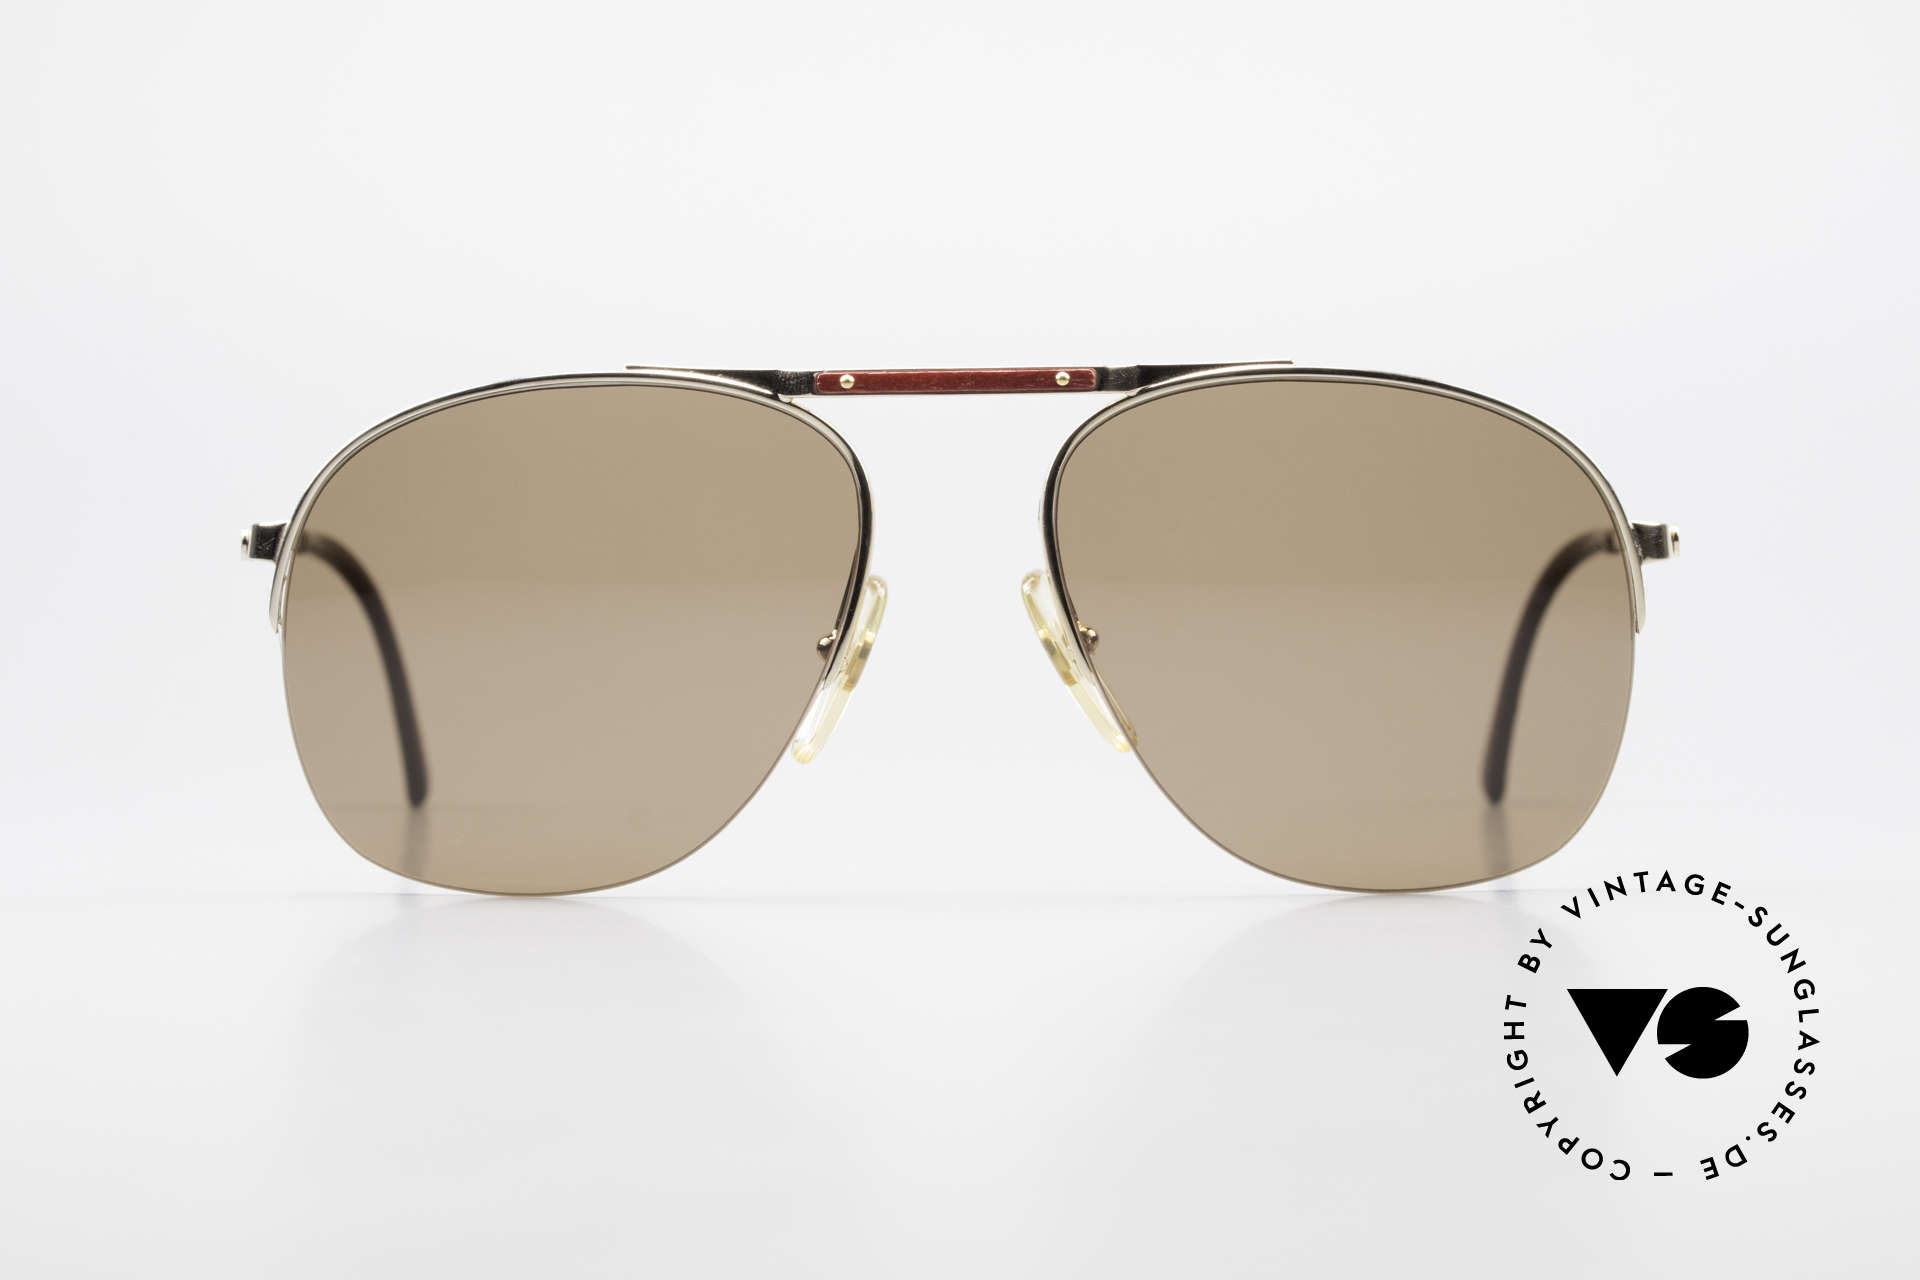 Dunhill 6022 80's Gentlemen's Sunglasses, ALFRED DUNHILL = synonymous with English style, Made for Men